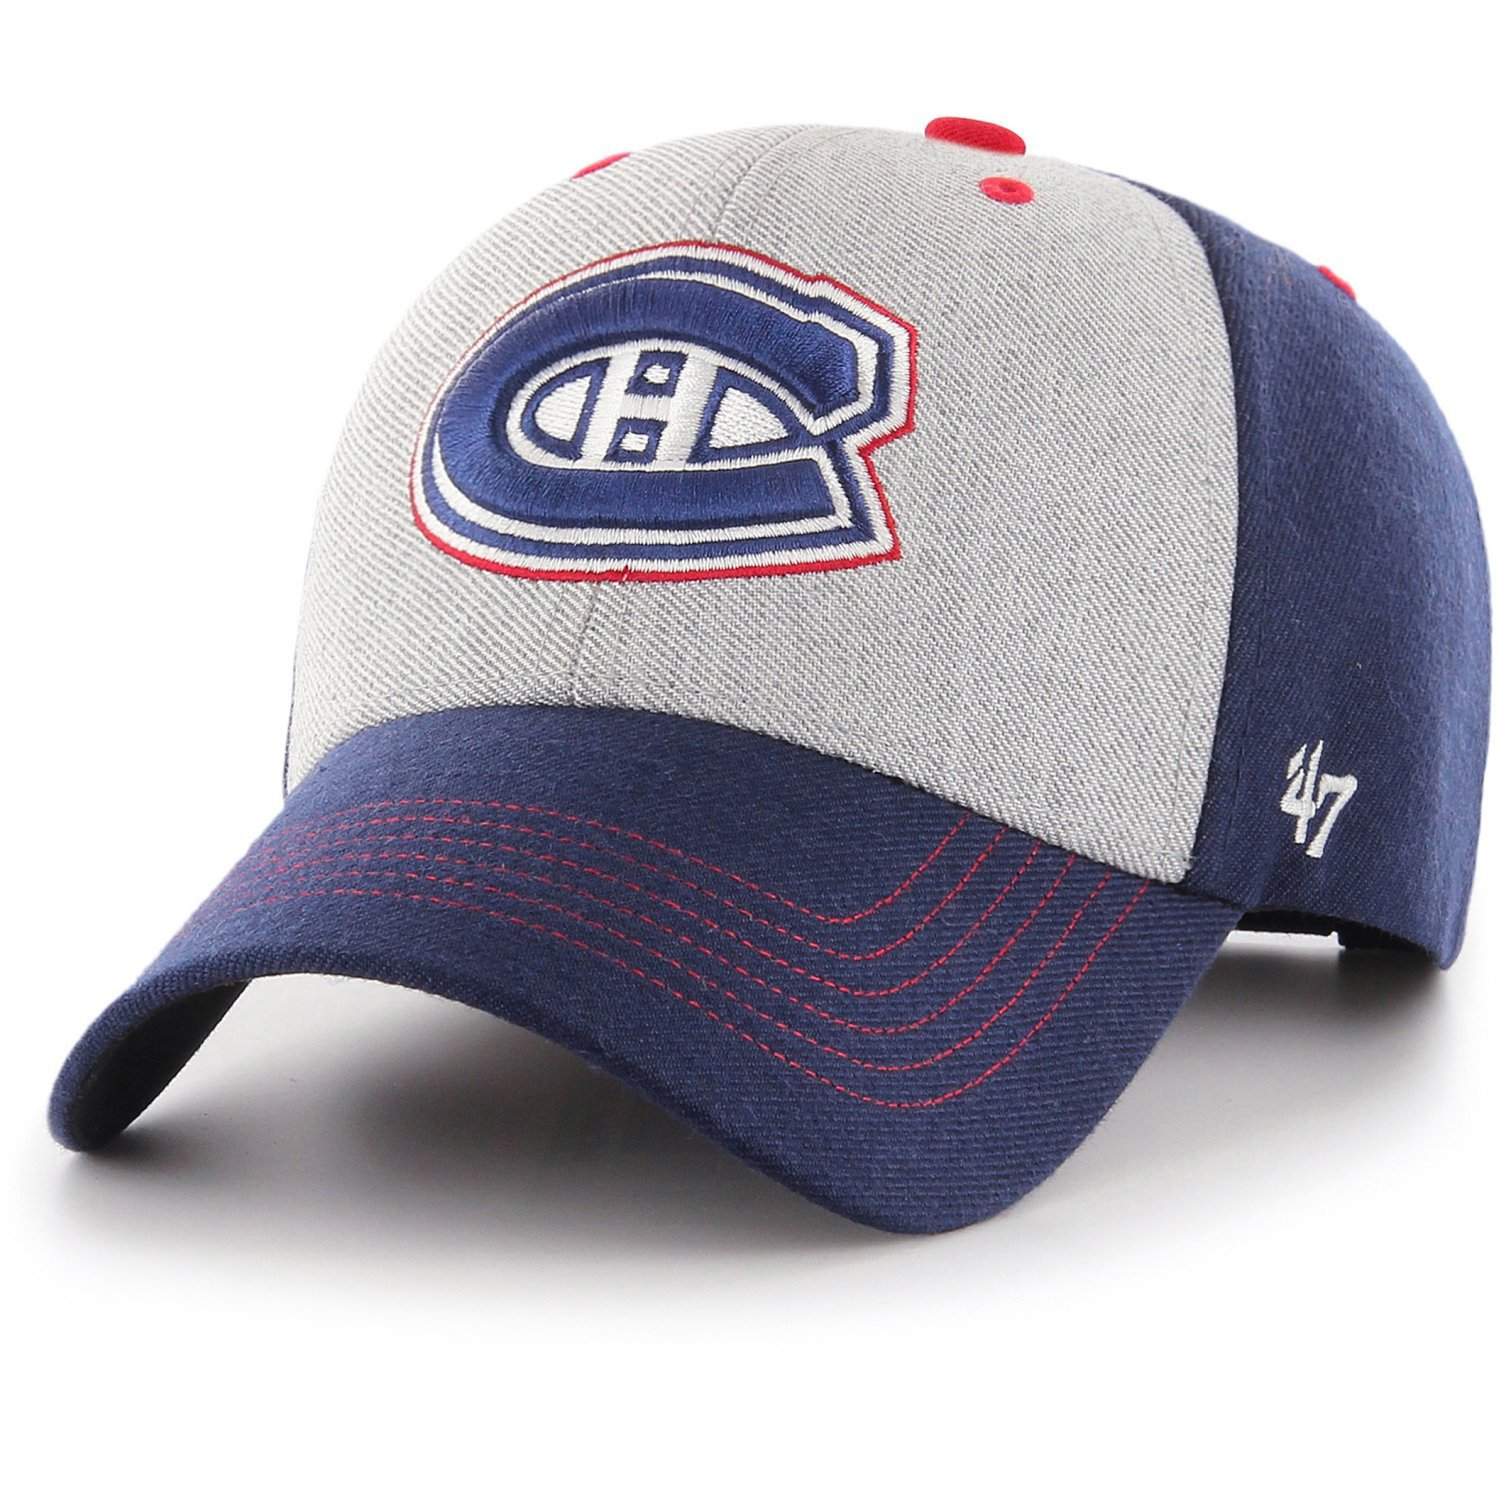 FORMATION Montreal Canadiens navy 47 Brand Adjustable Cap Eishockey